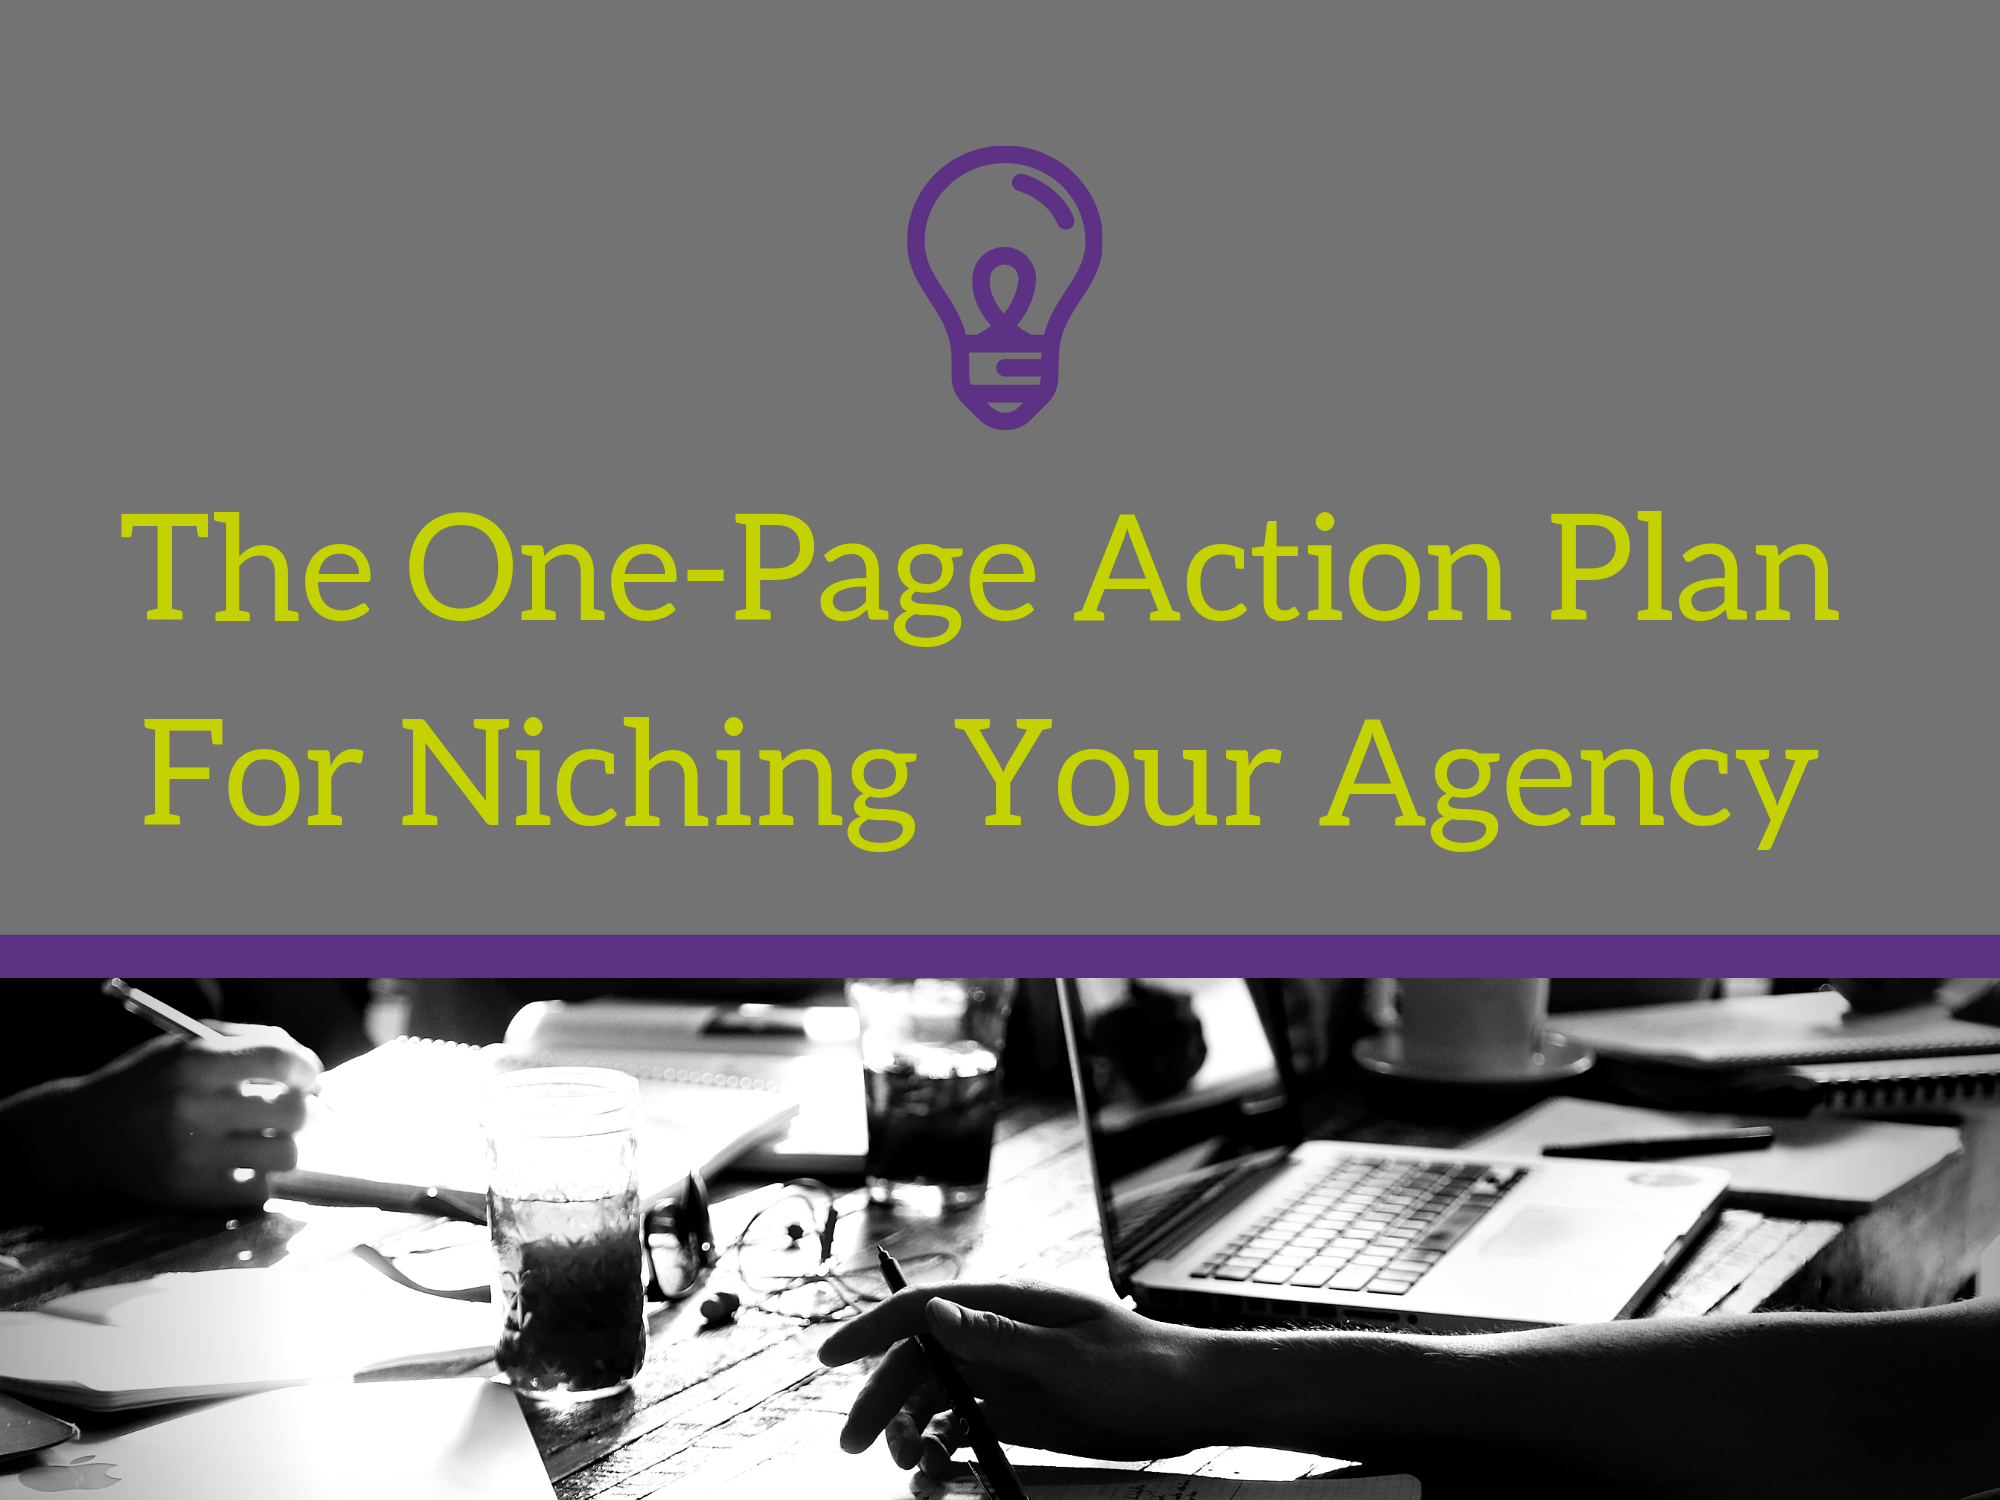 Niching your agency